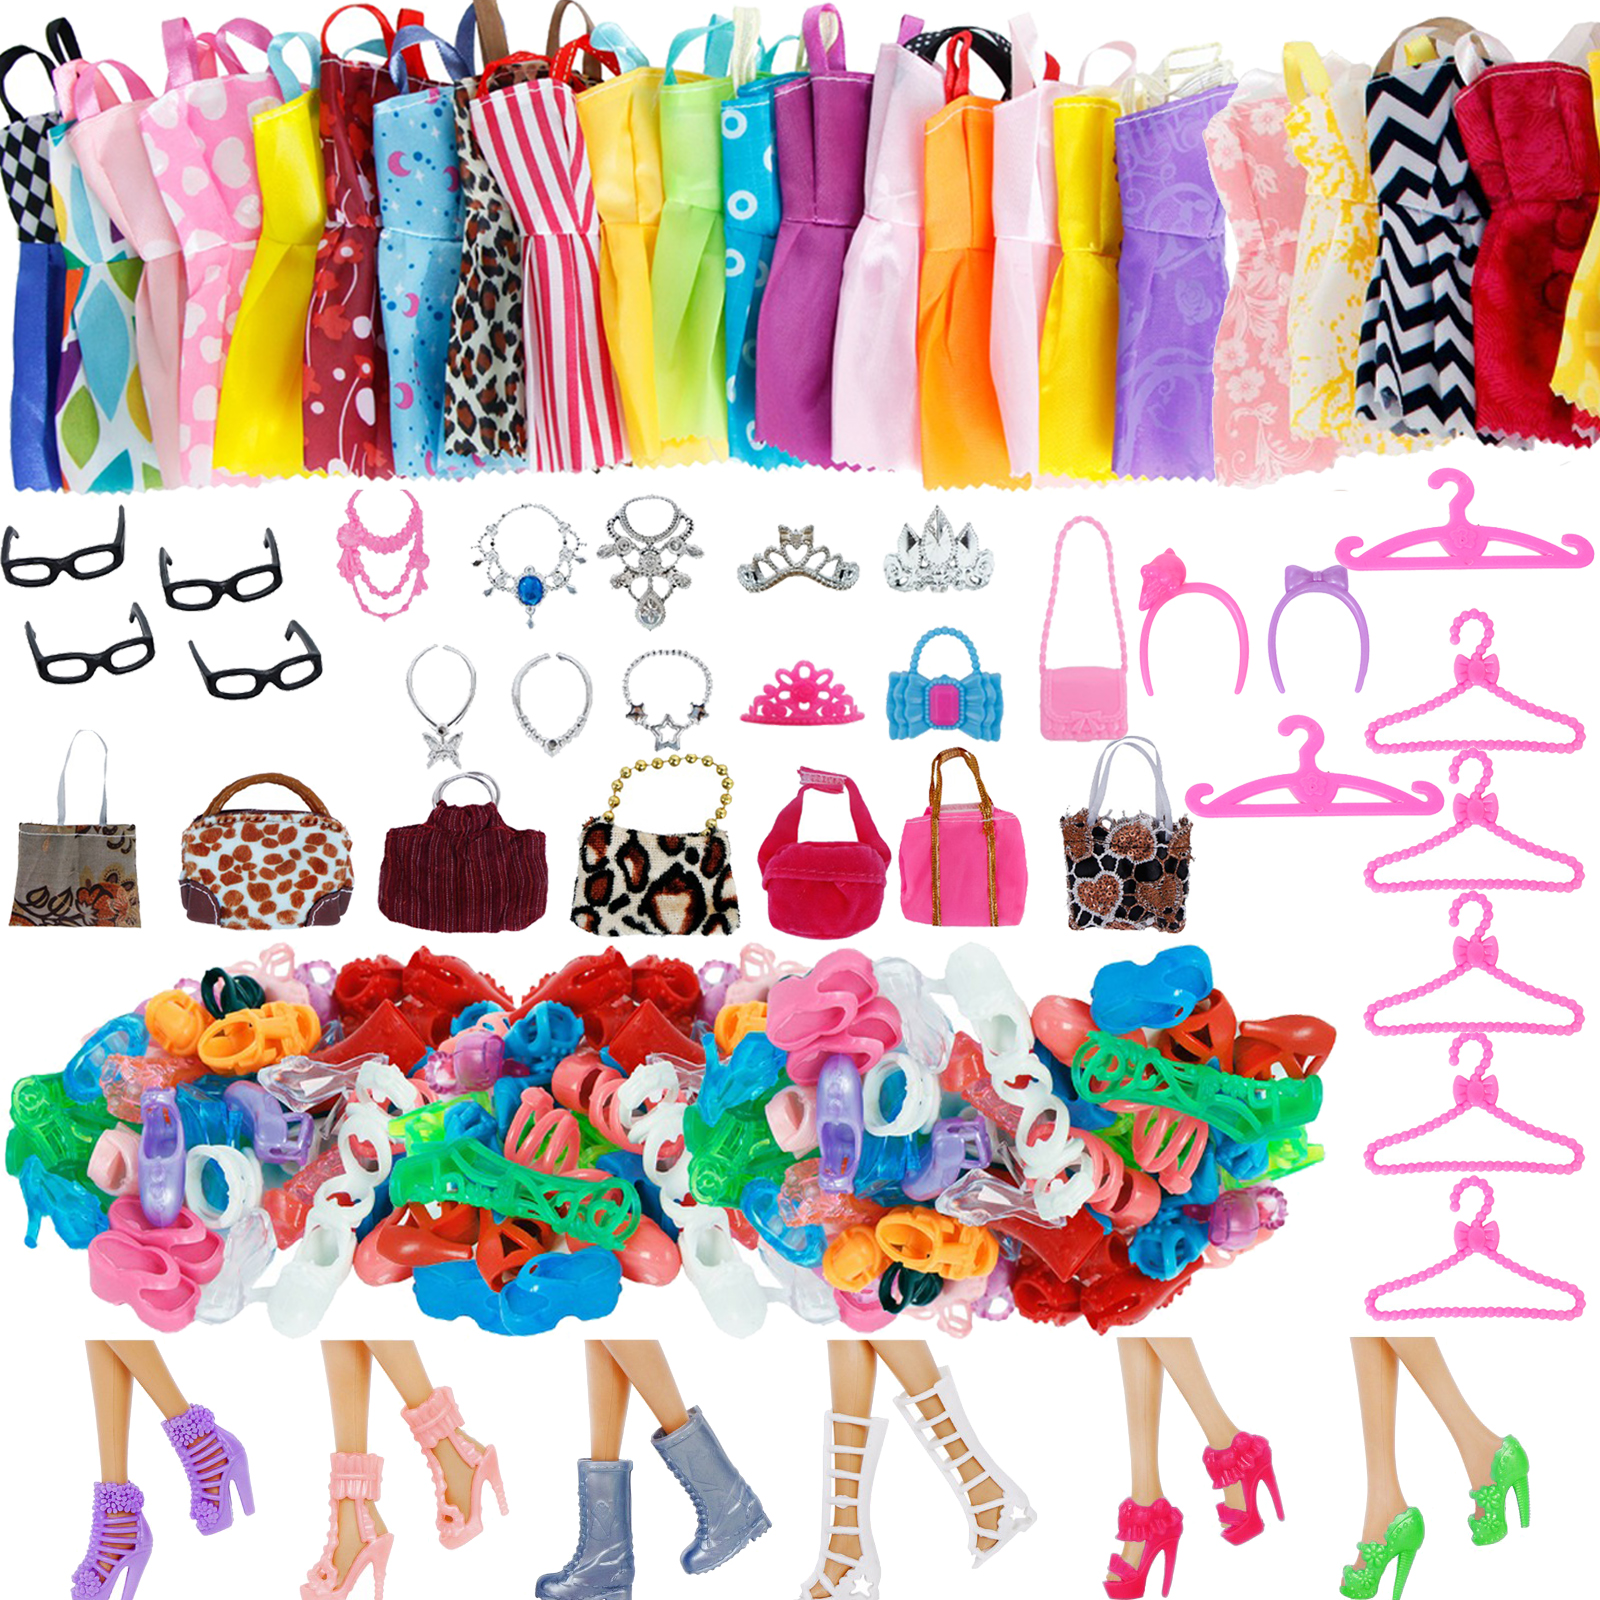 Random 1 Set Doll Accessories for Barbie Doll Shoes Boots Mini Dress Handbags Crown Hangers Glasses Doll Clothes Kids Toy 12''|Dolls Accessories| |  - title=